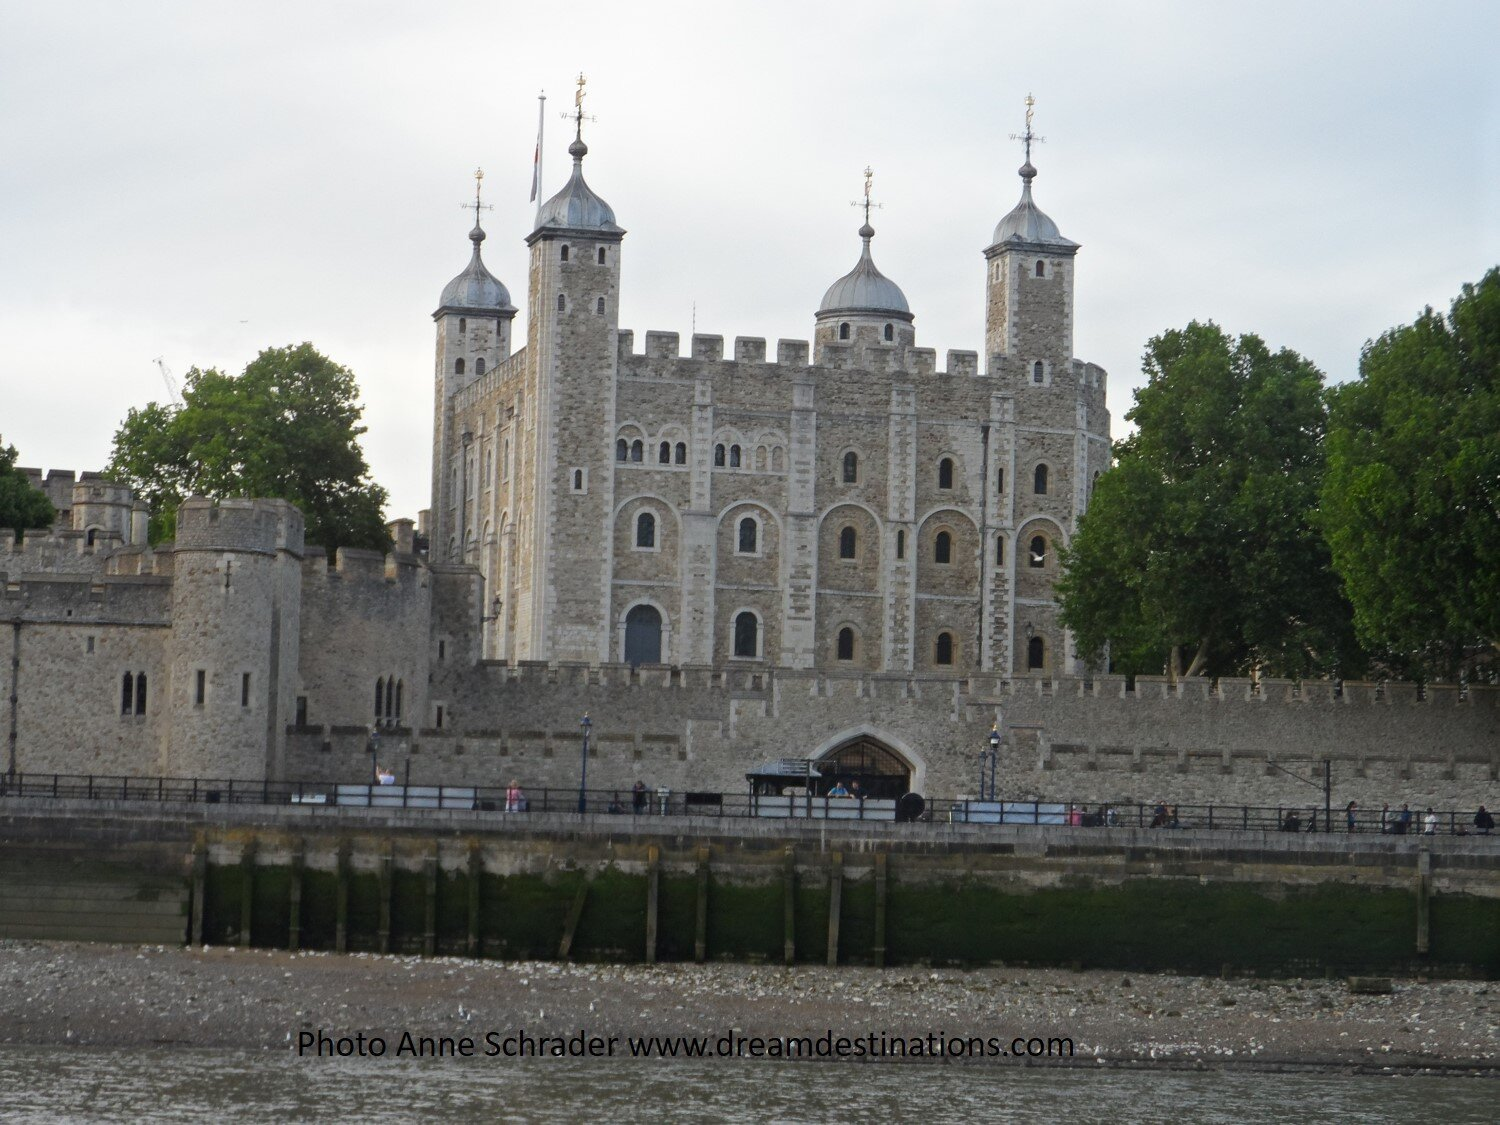 Tower of London 2019—this picture was taken on a Thames River cruise